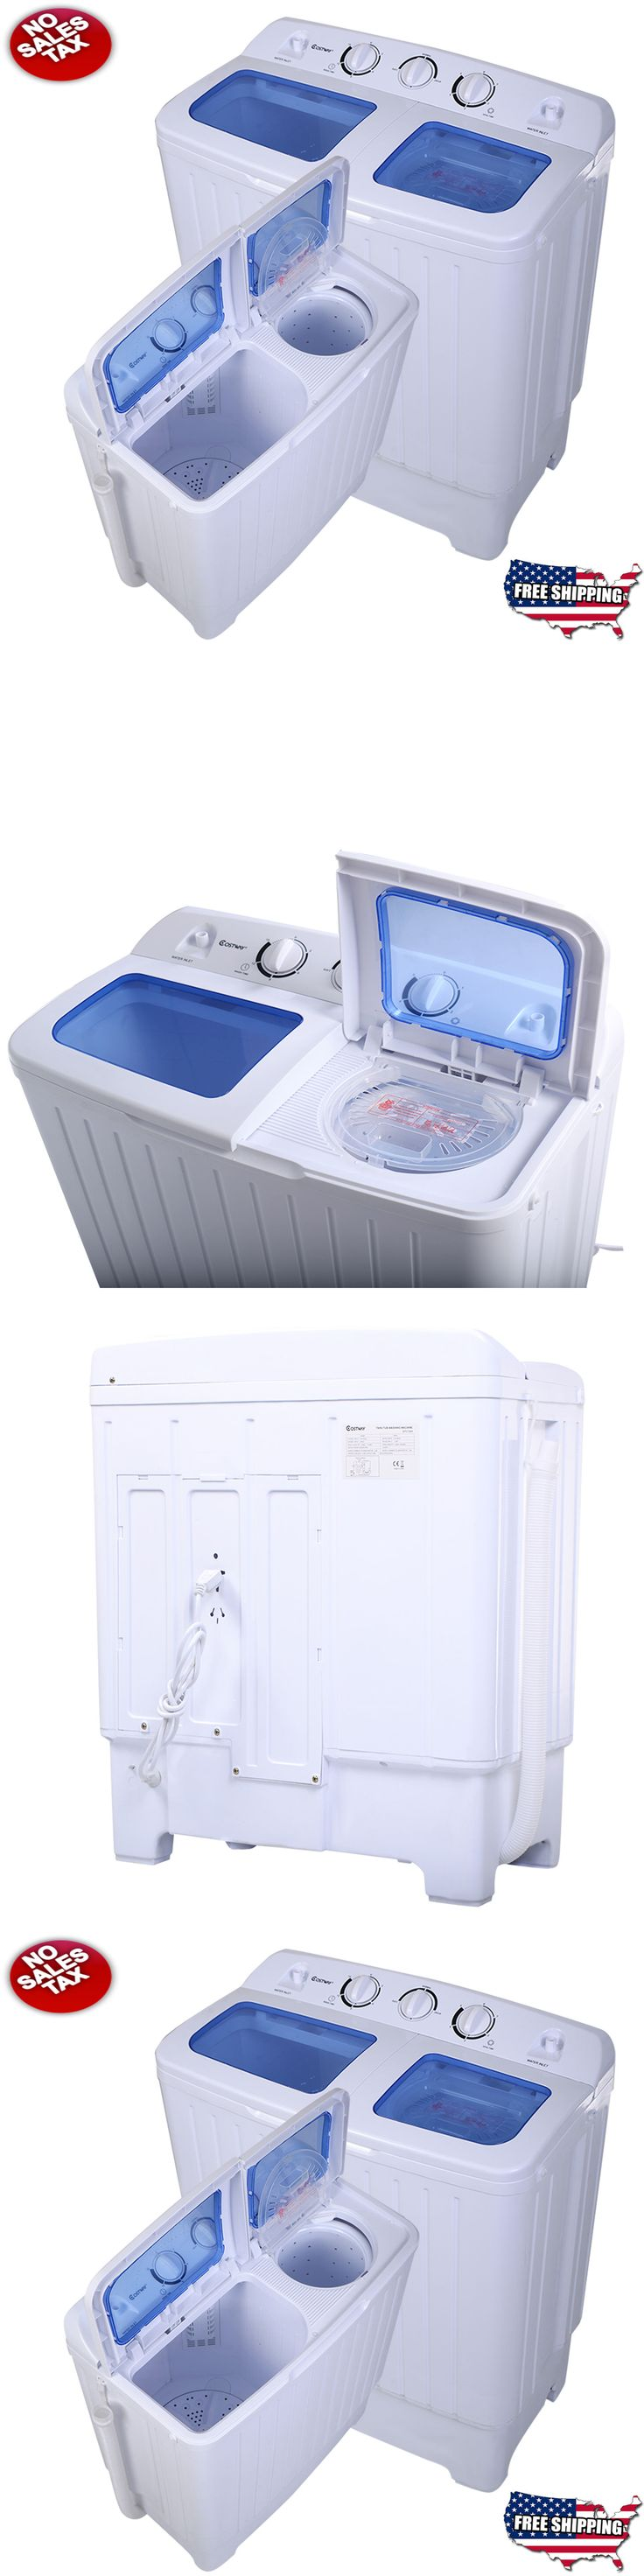 Washer and Dryer Sets 71257: All In One Portable Washing Machine Cleaner Dryer Apartment Washer Combo Compact -> BUY IT NOW ONLY: $123.99 on eBay!